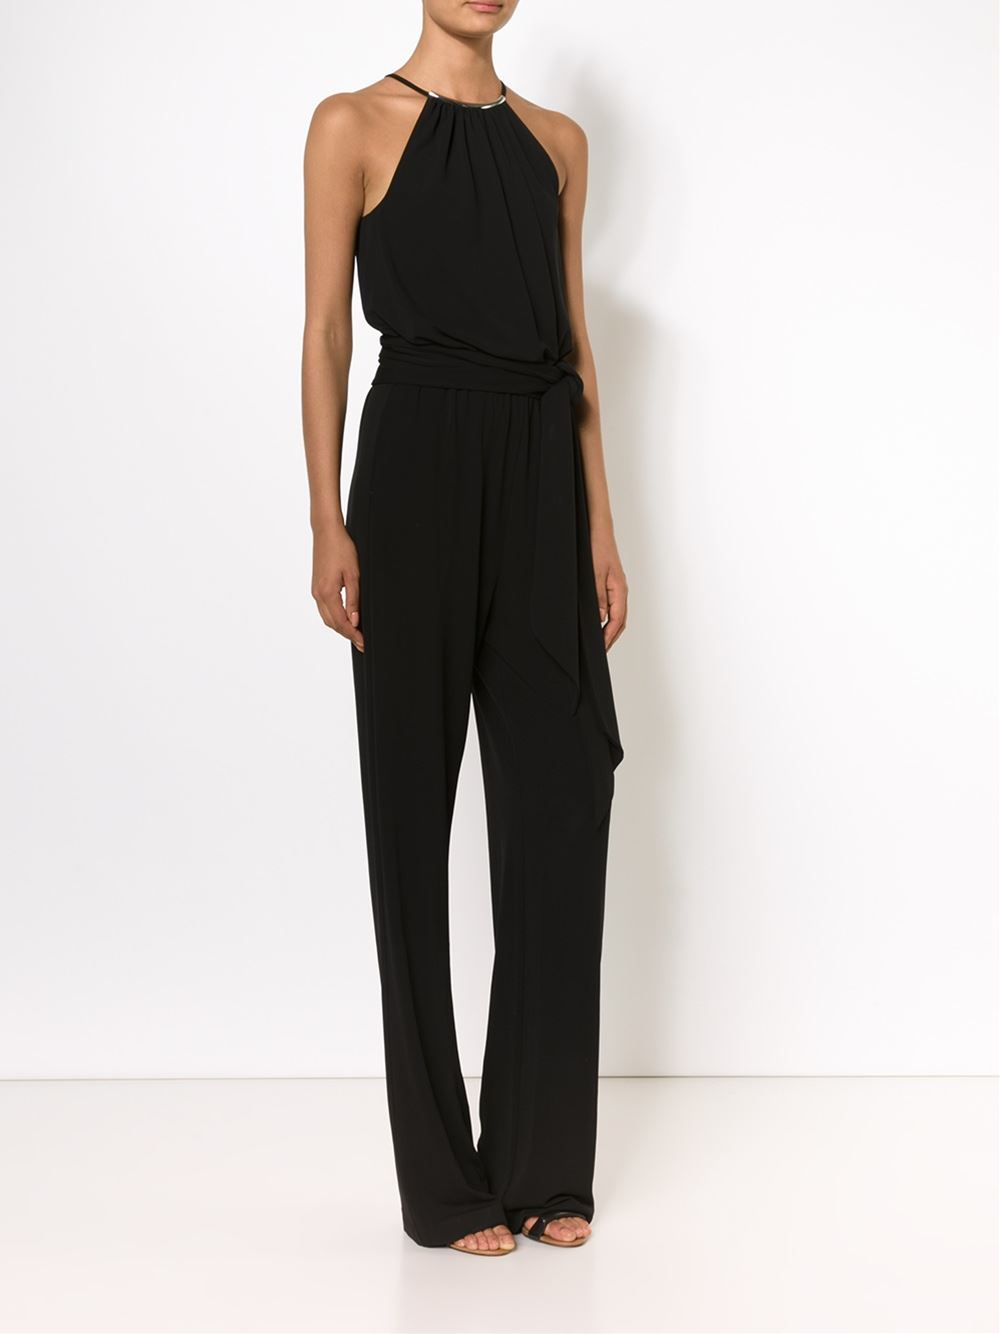 Feel good and look great in the Ponte Sleeveless Jumpsuit, a classic style that channels sophistication.